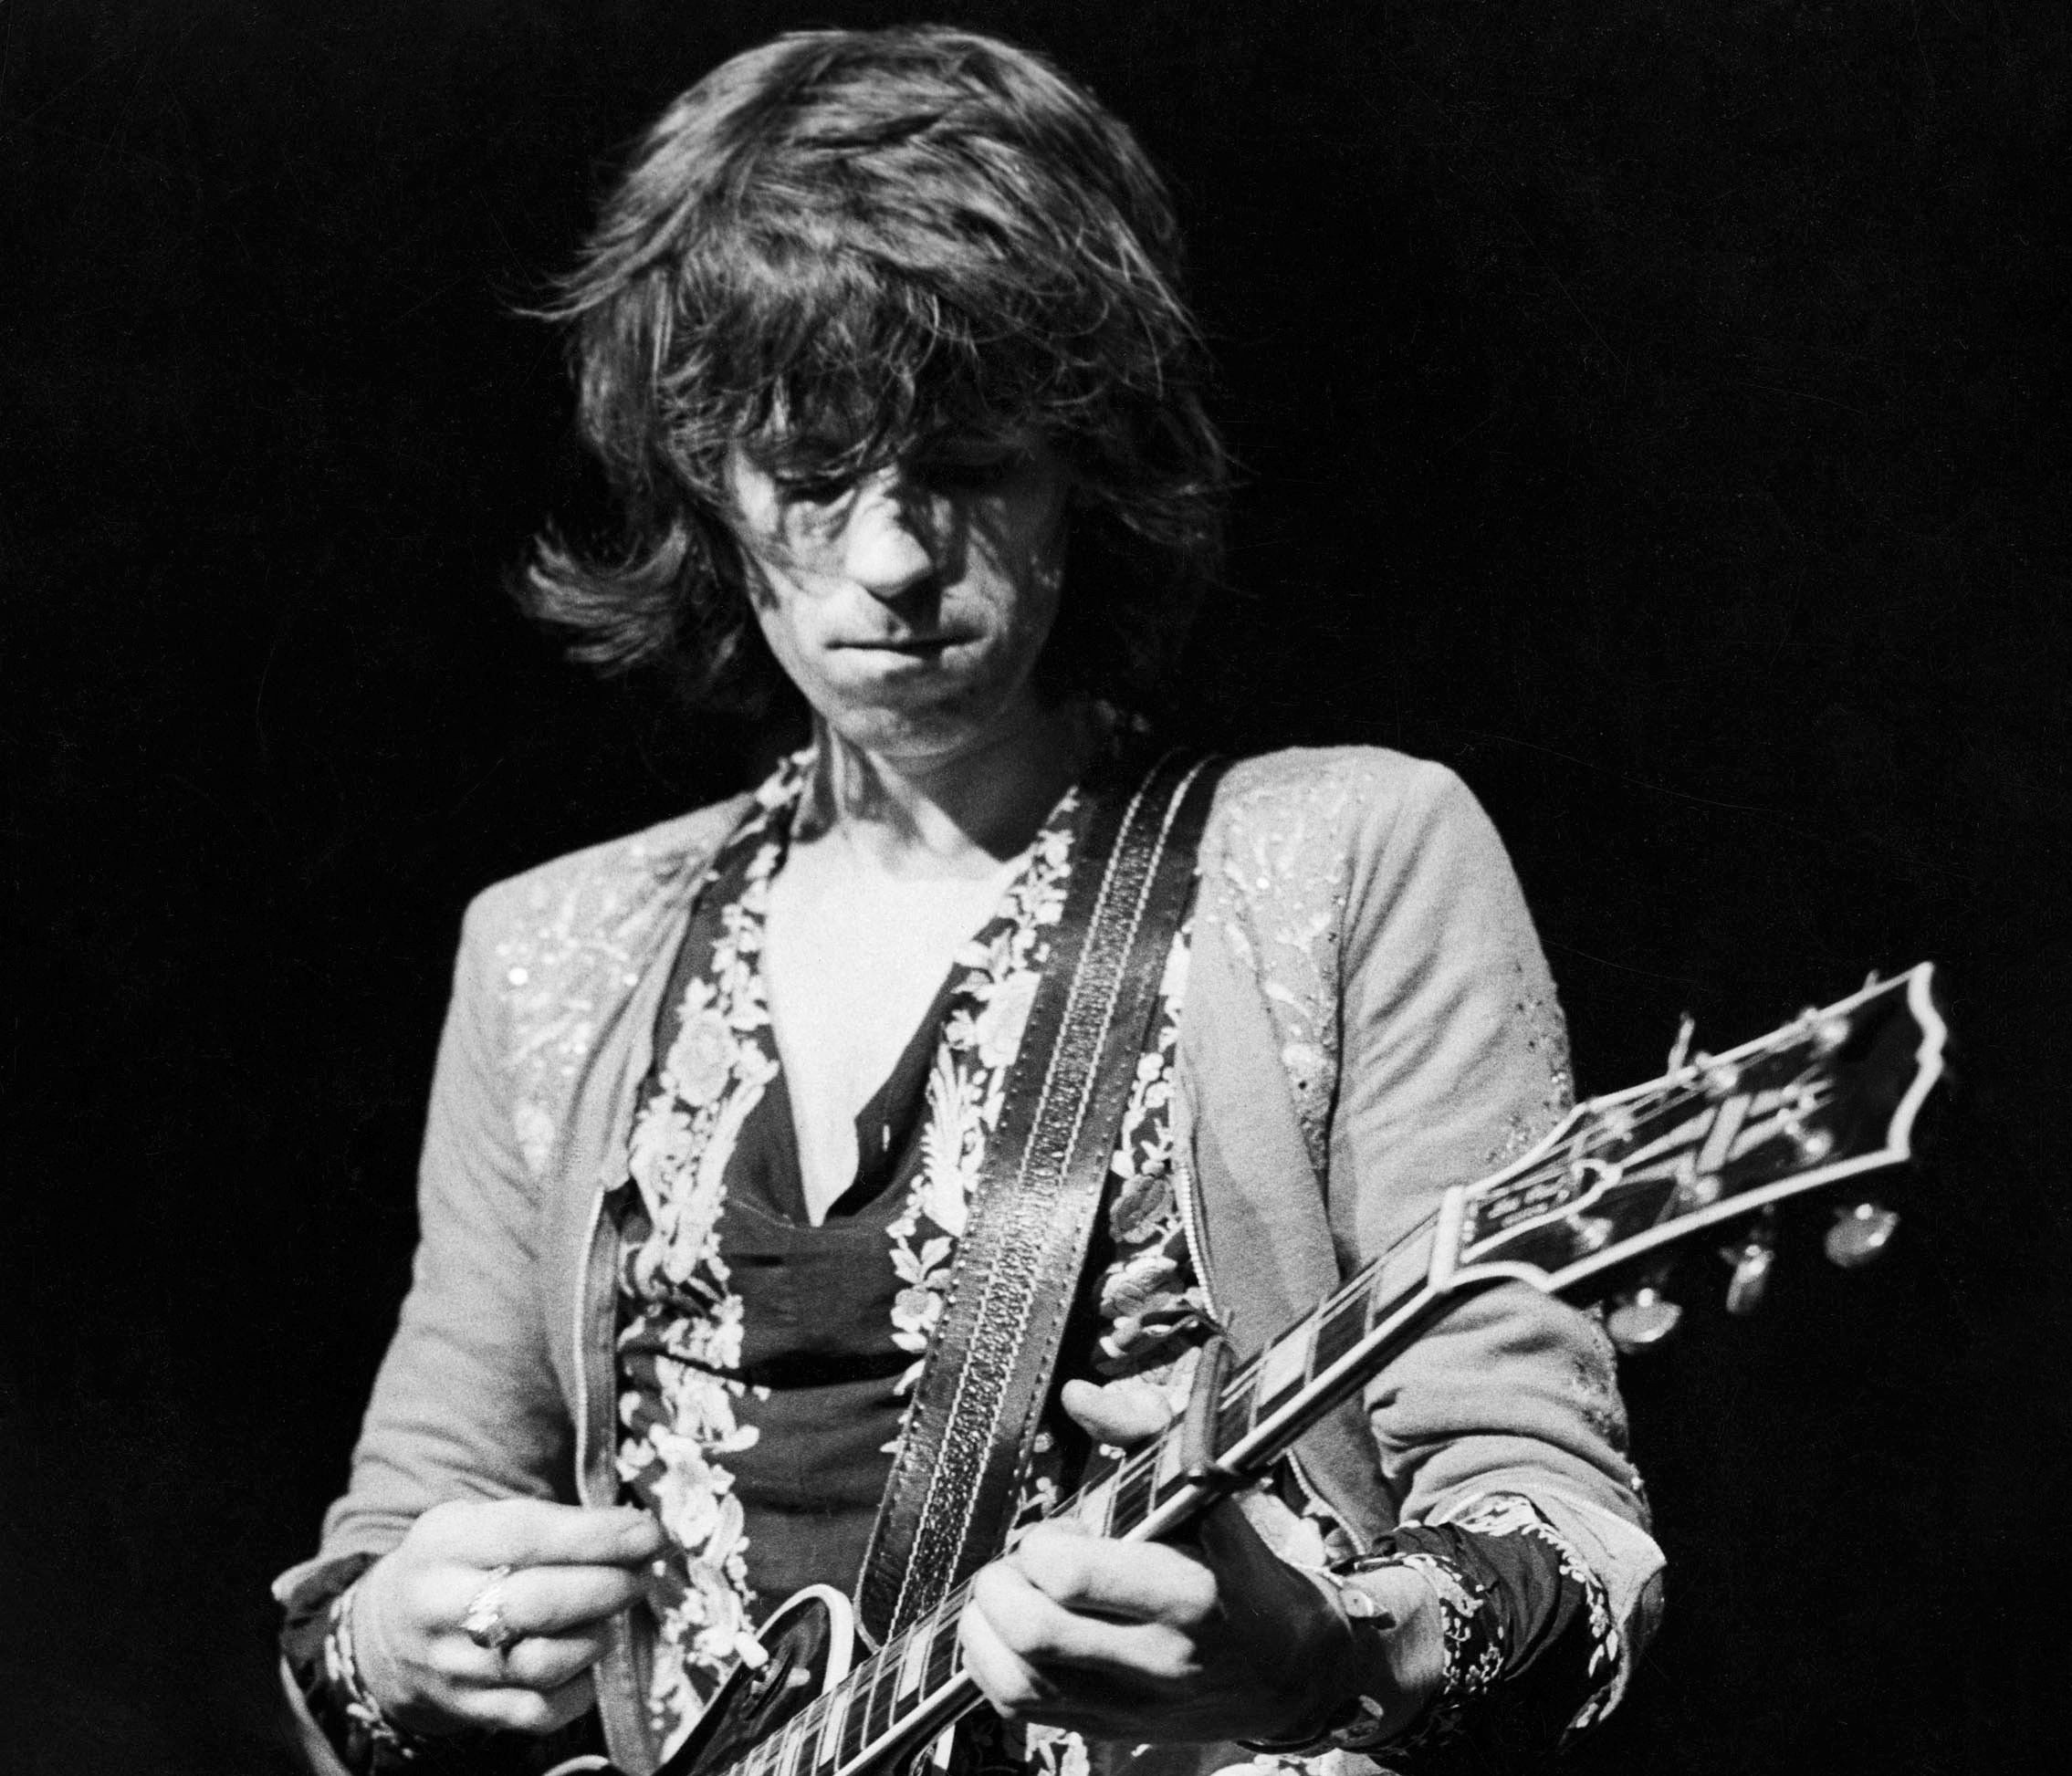 Keith Richards in